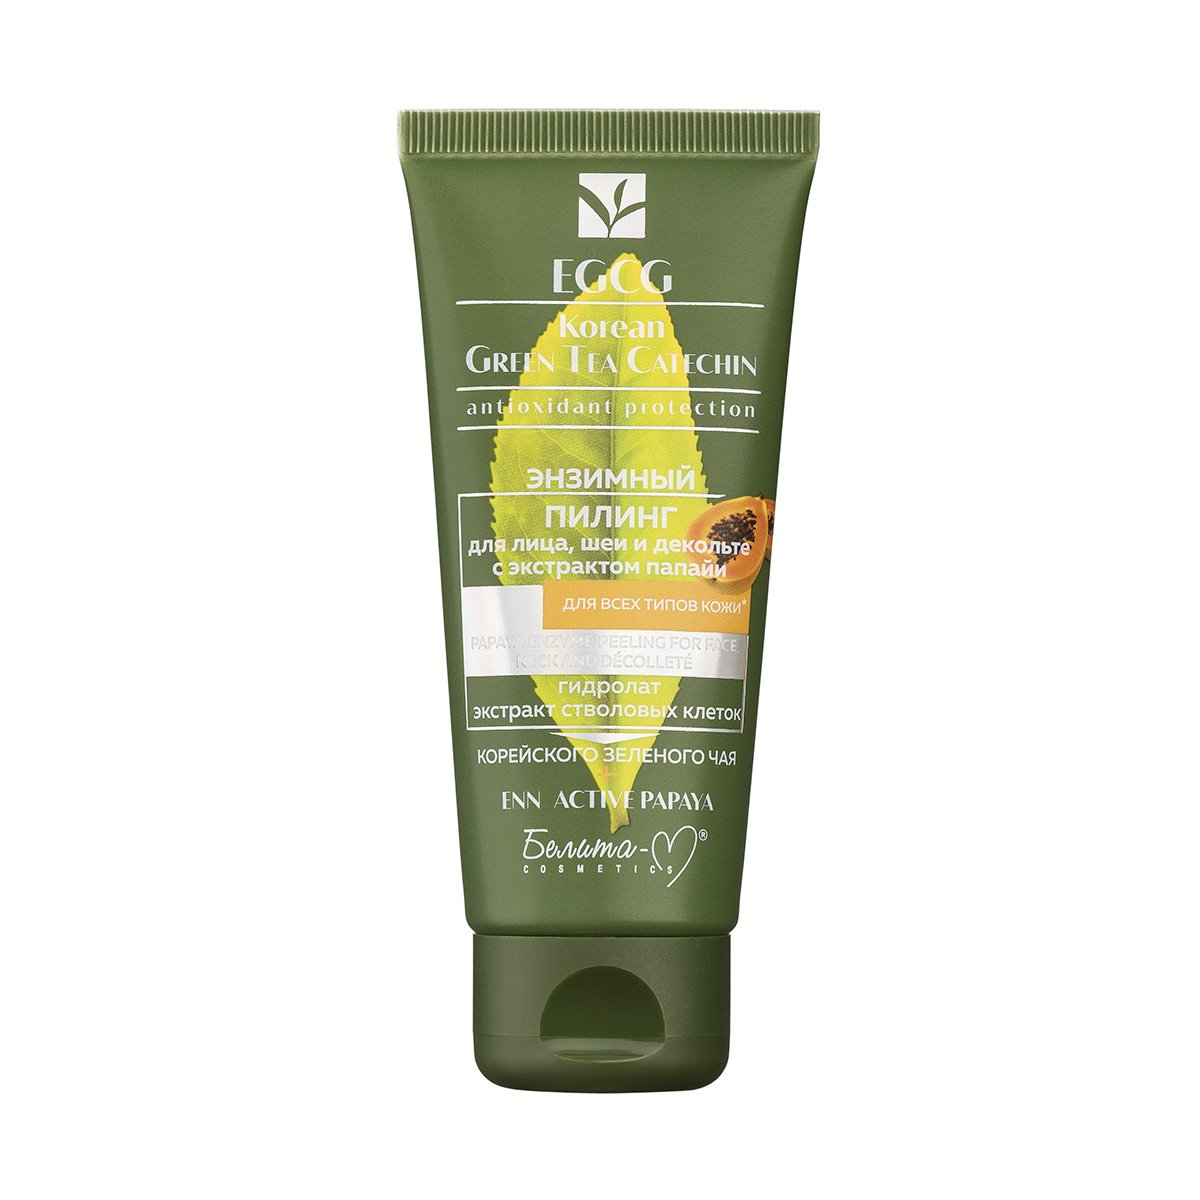 EGCG Korean Green Tea Catechin Enzyme Peeling With Papaya For All Skin Types 60g Facial Scrub Face Hands Body Peeling